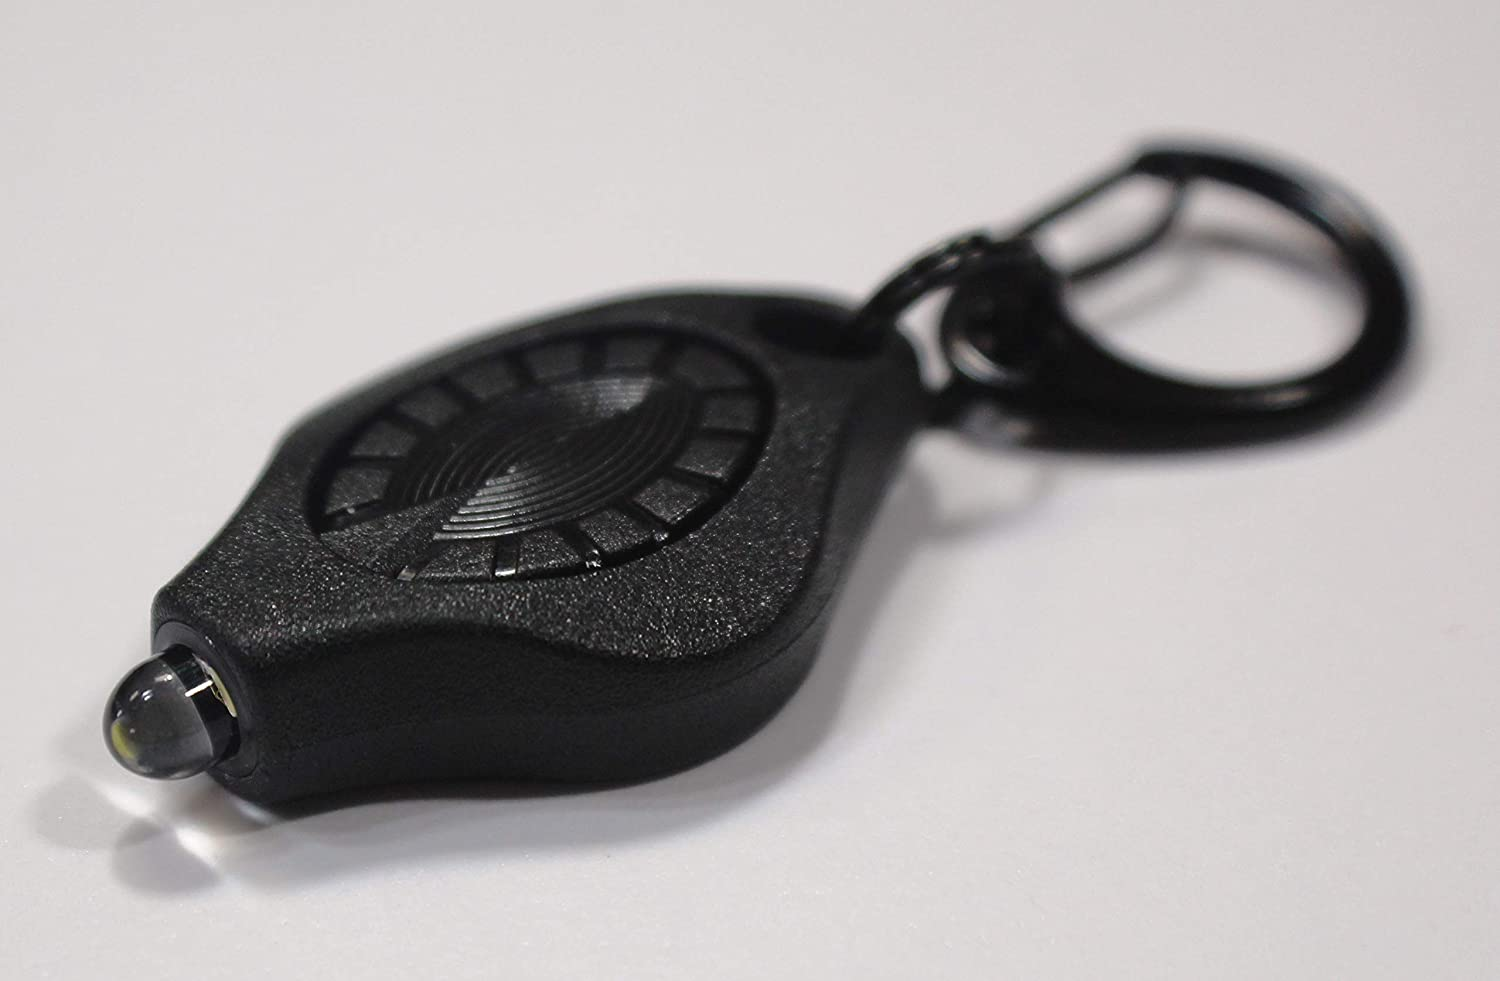 Image of a black keychain flashlight with black keyholder attached to it.